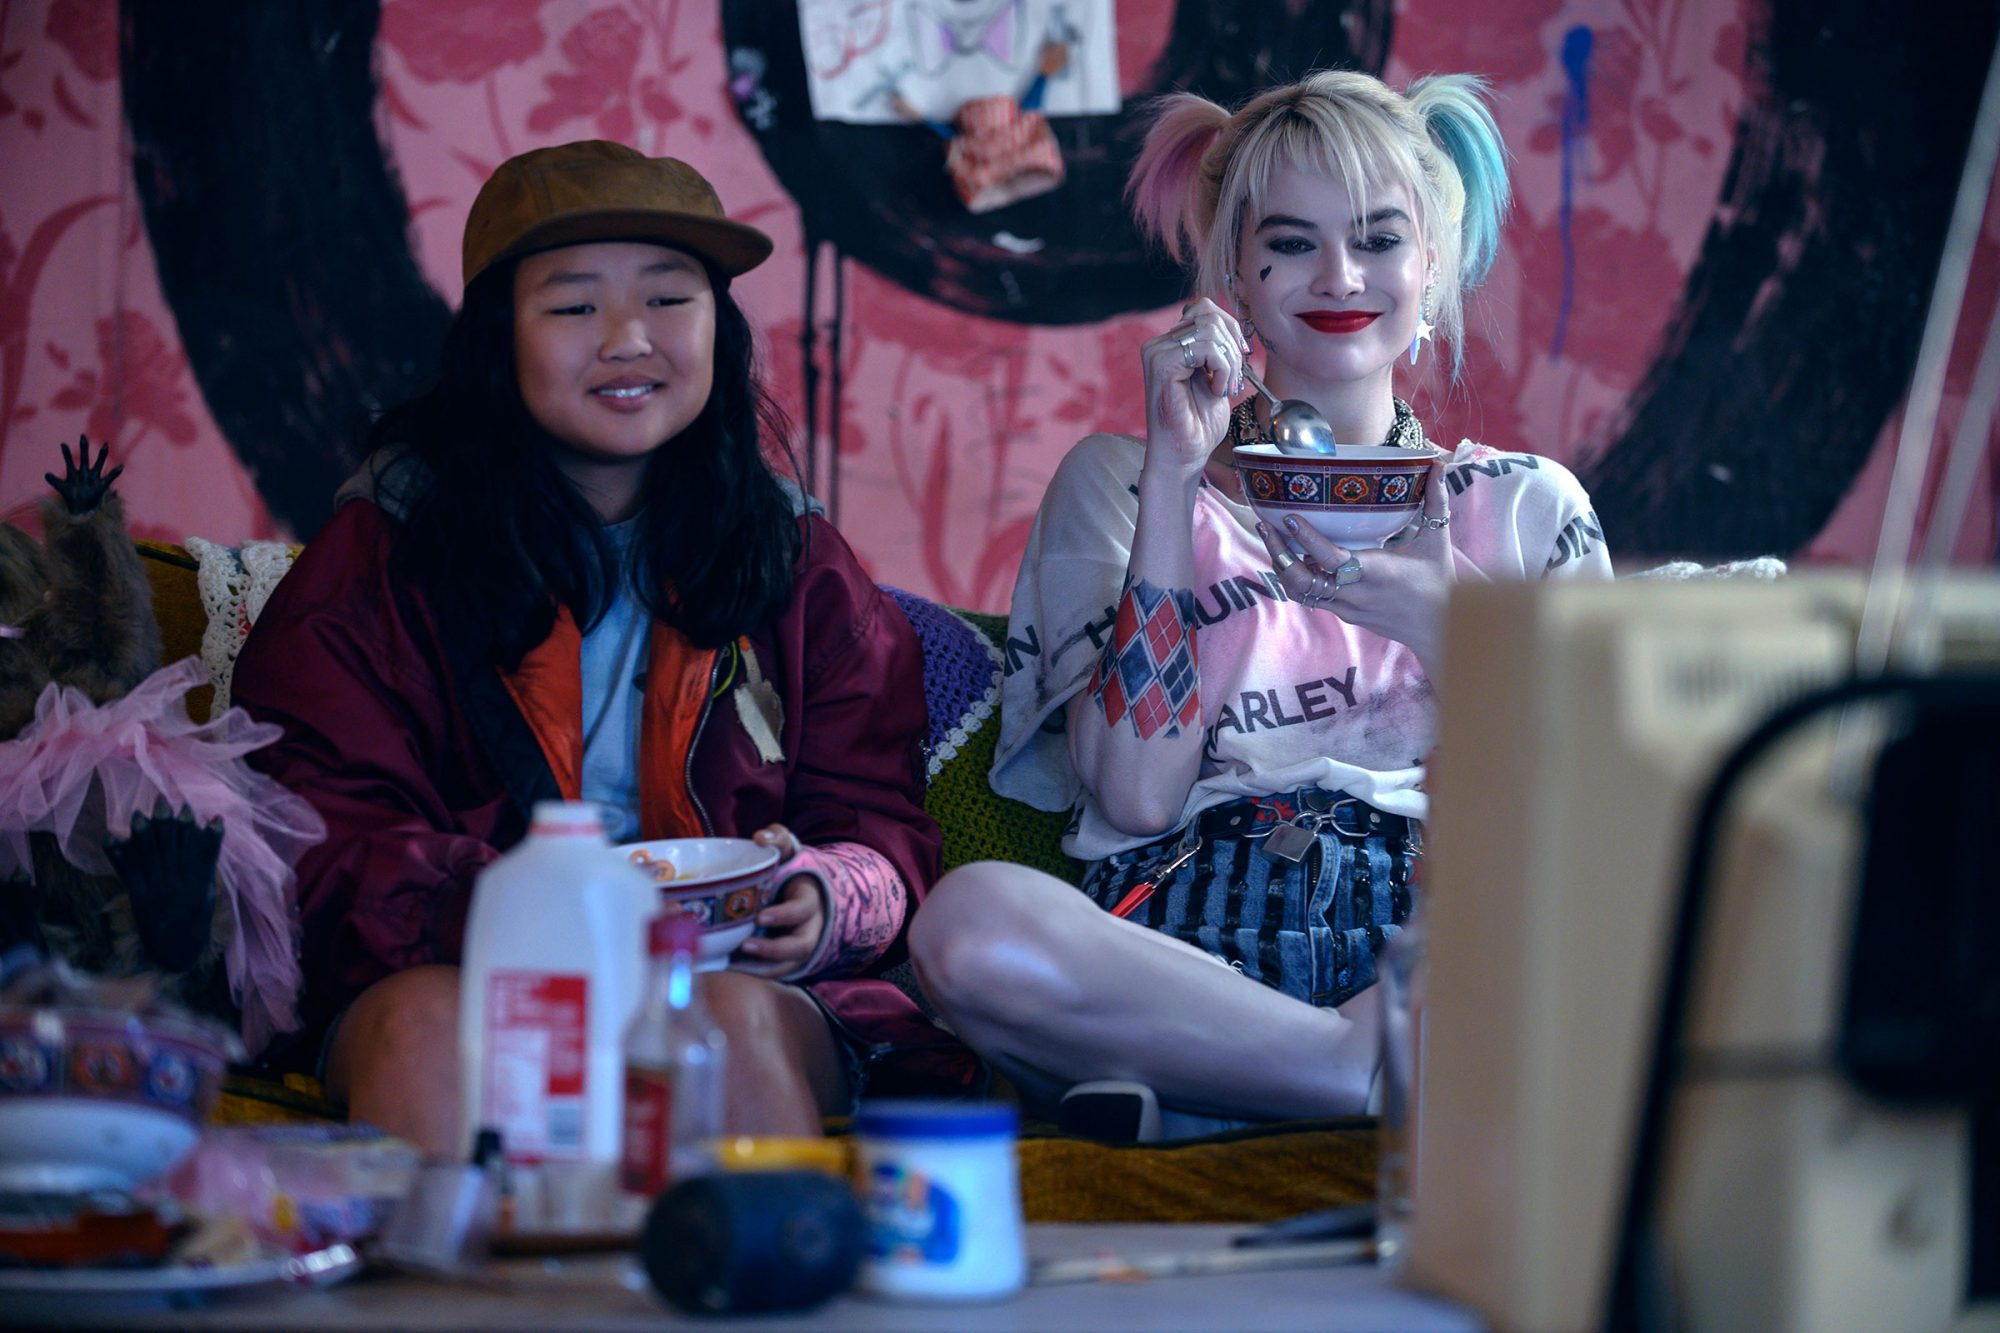 Birds Of Prey Gets New Title At Movie Theaters After Disappointing Box Office Results Ew Com